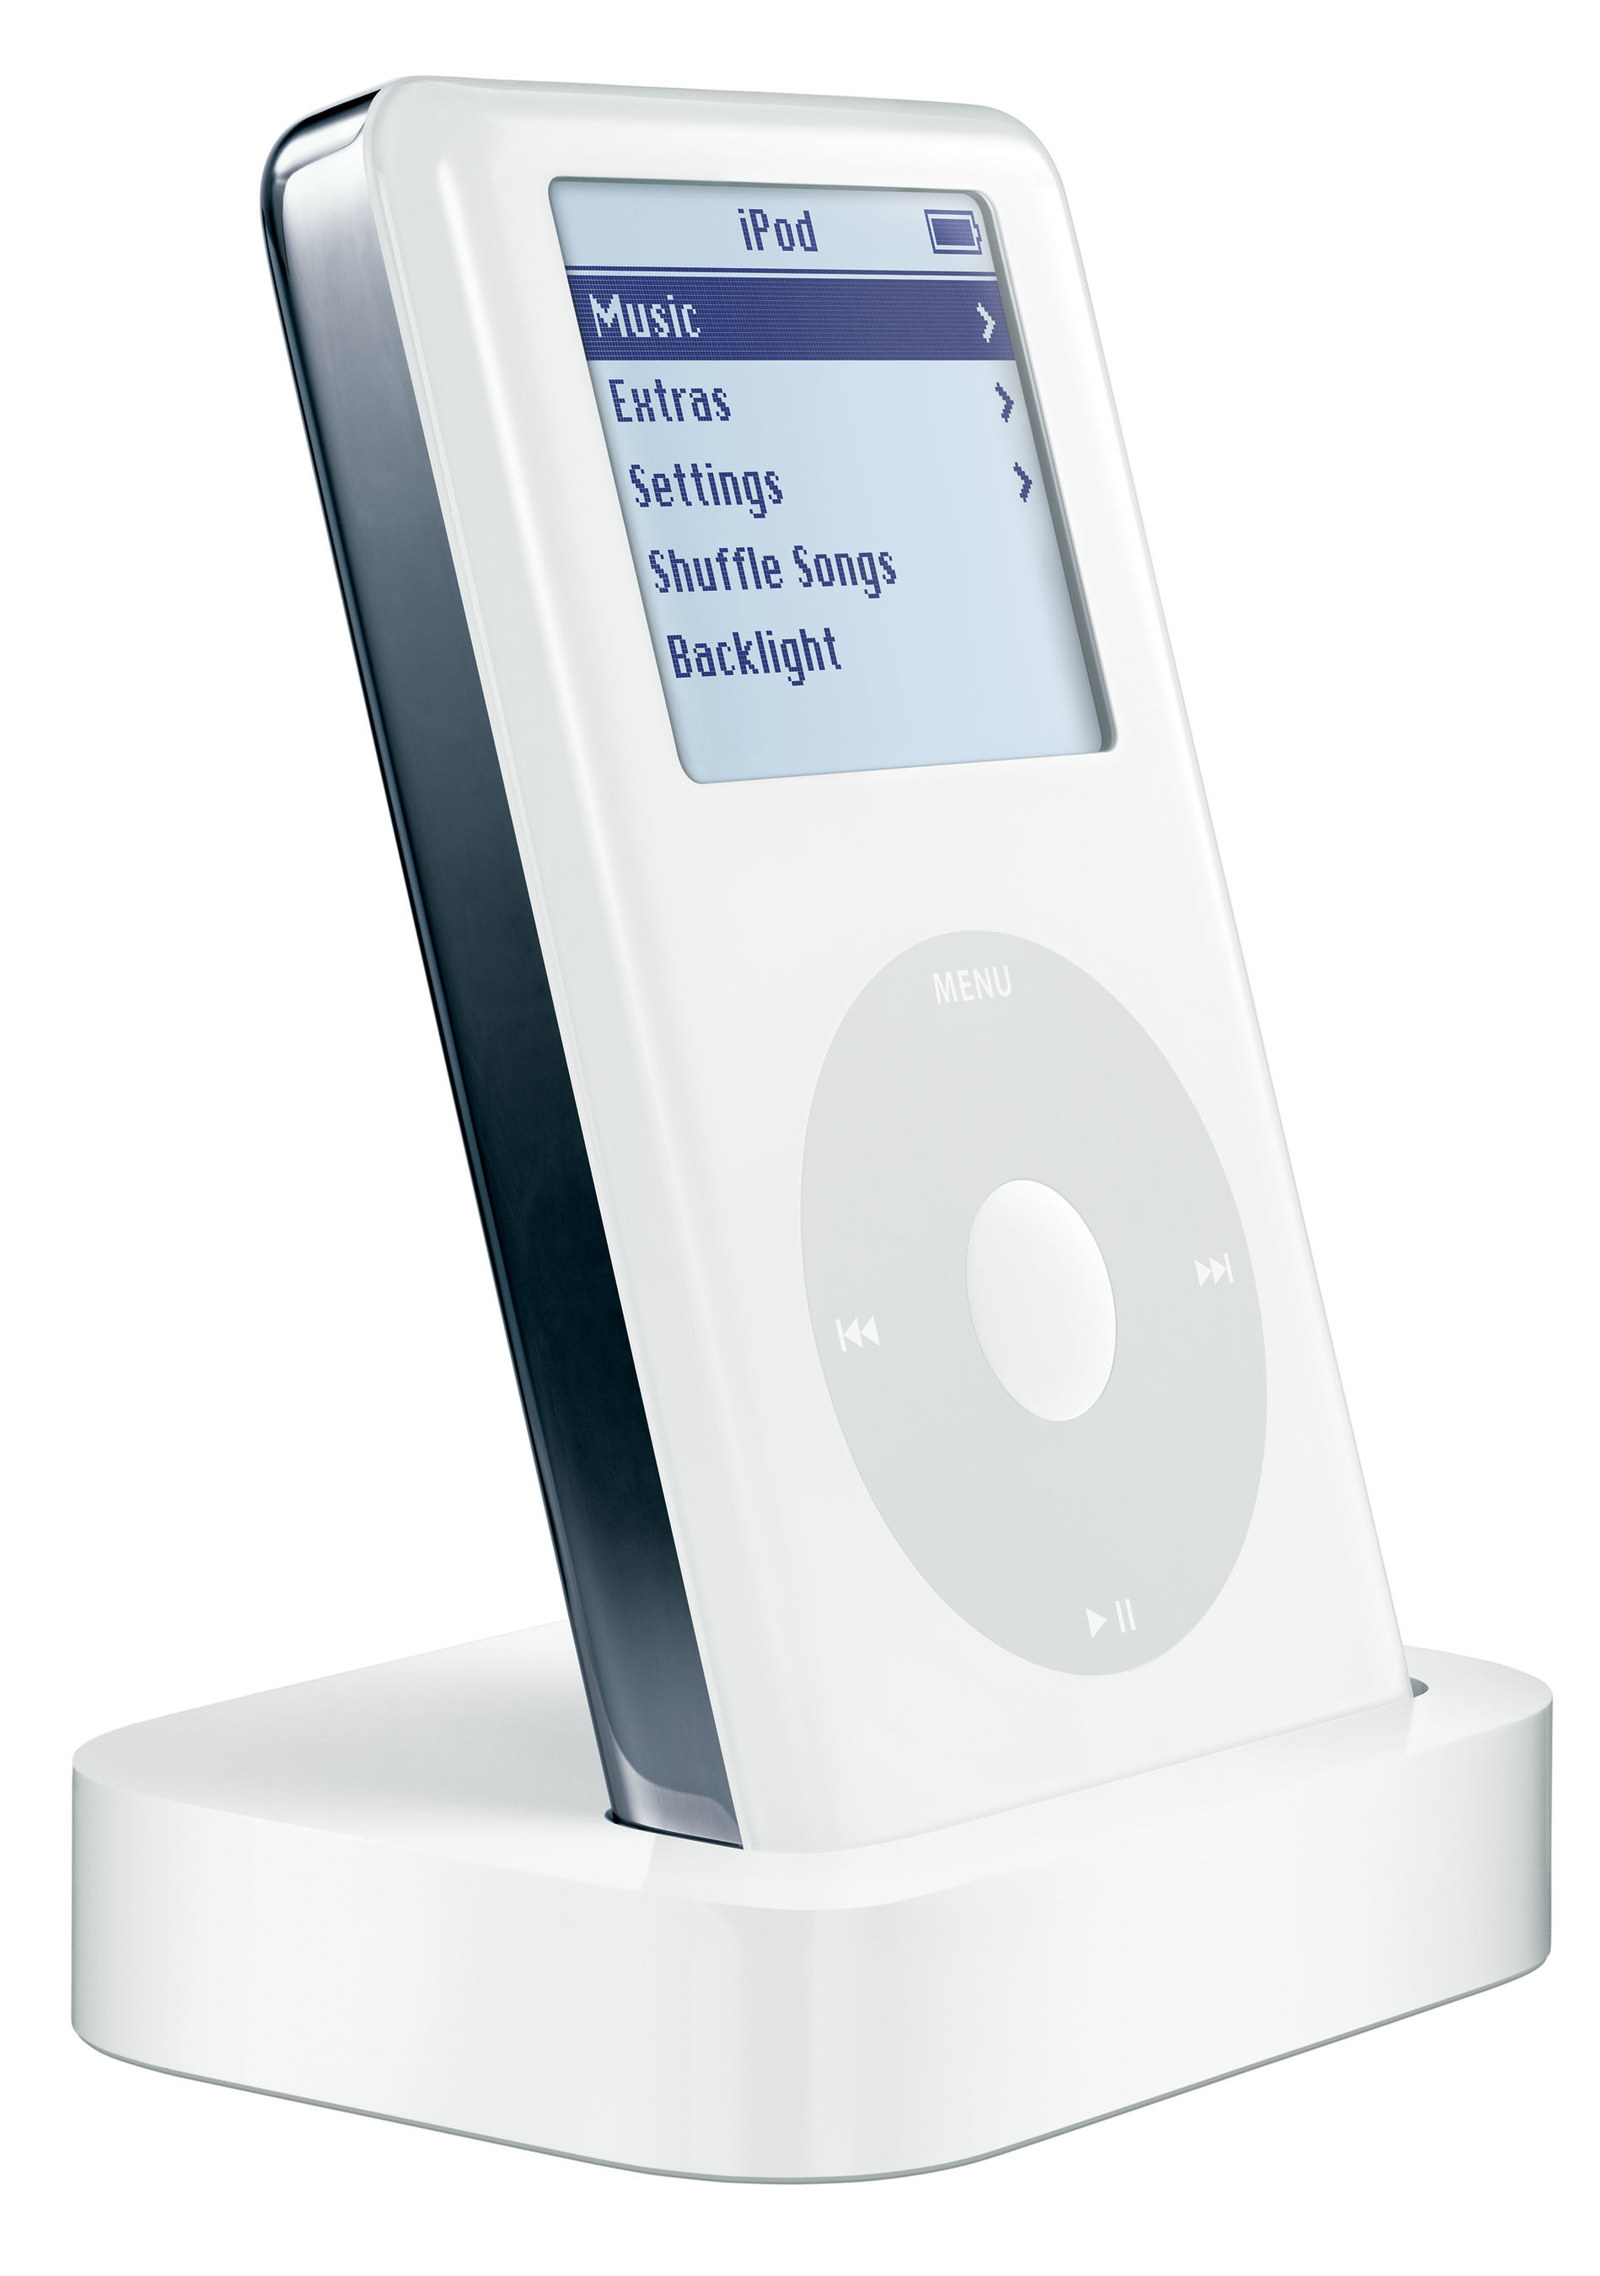 Apple iPod photo classic 4th Generation White (40 GB) for sale online | eBay